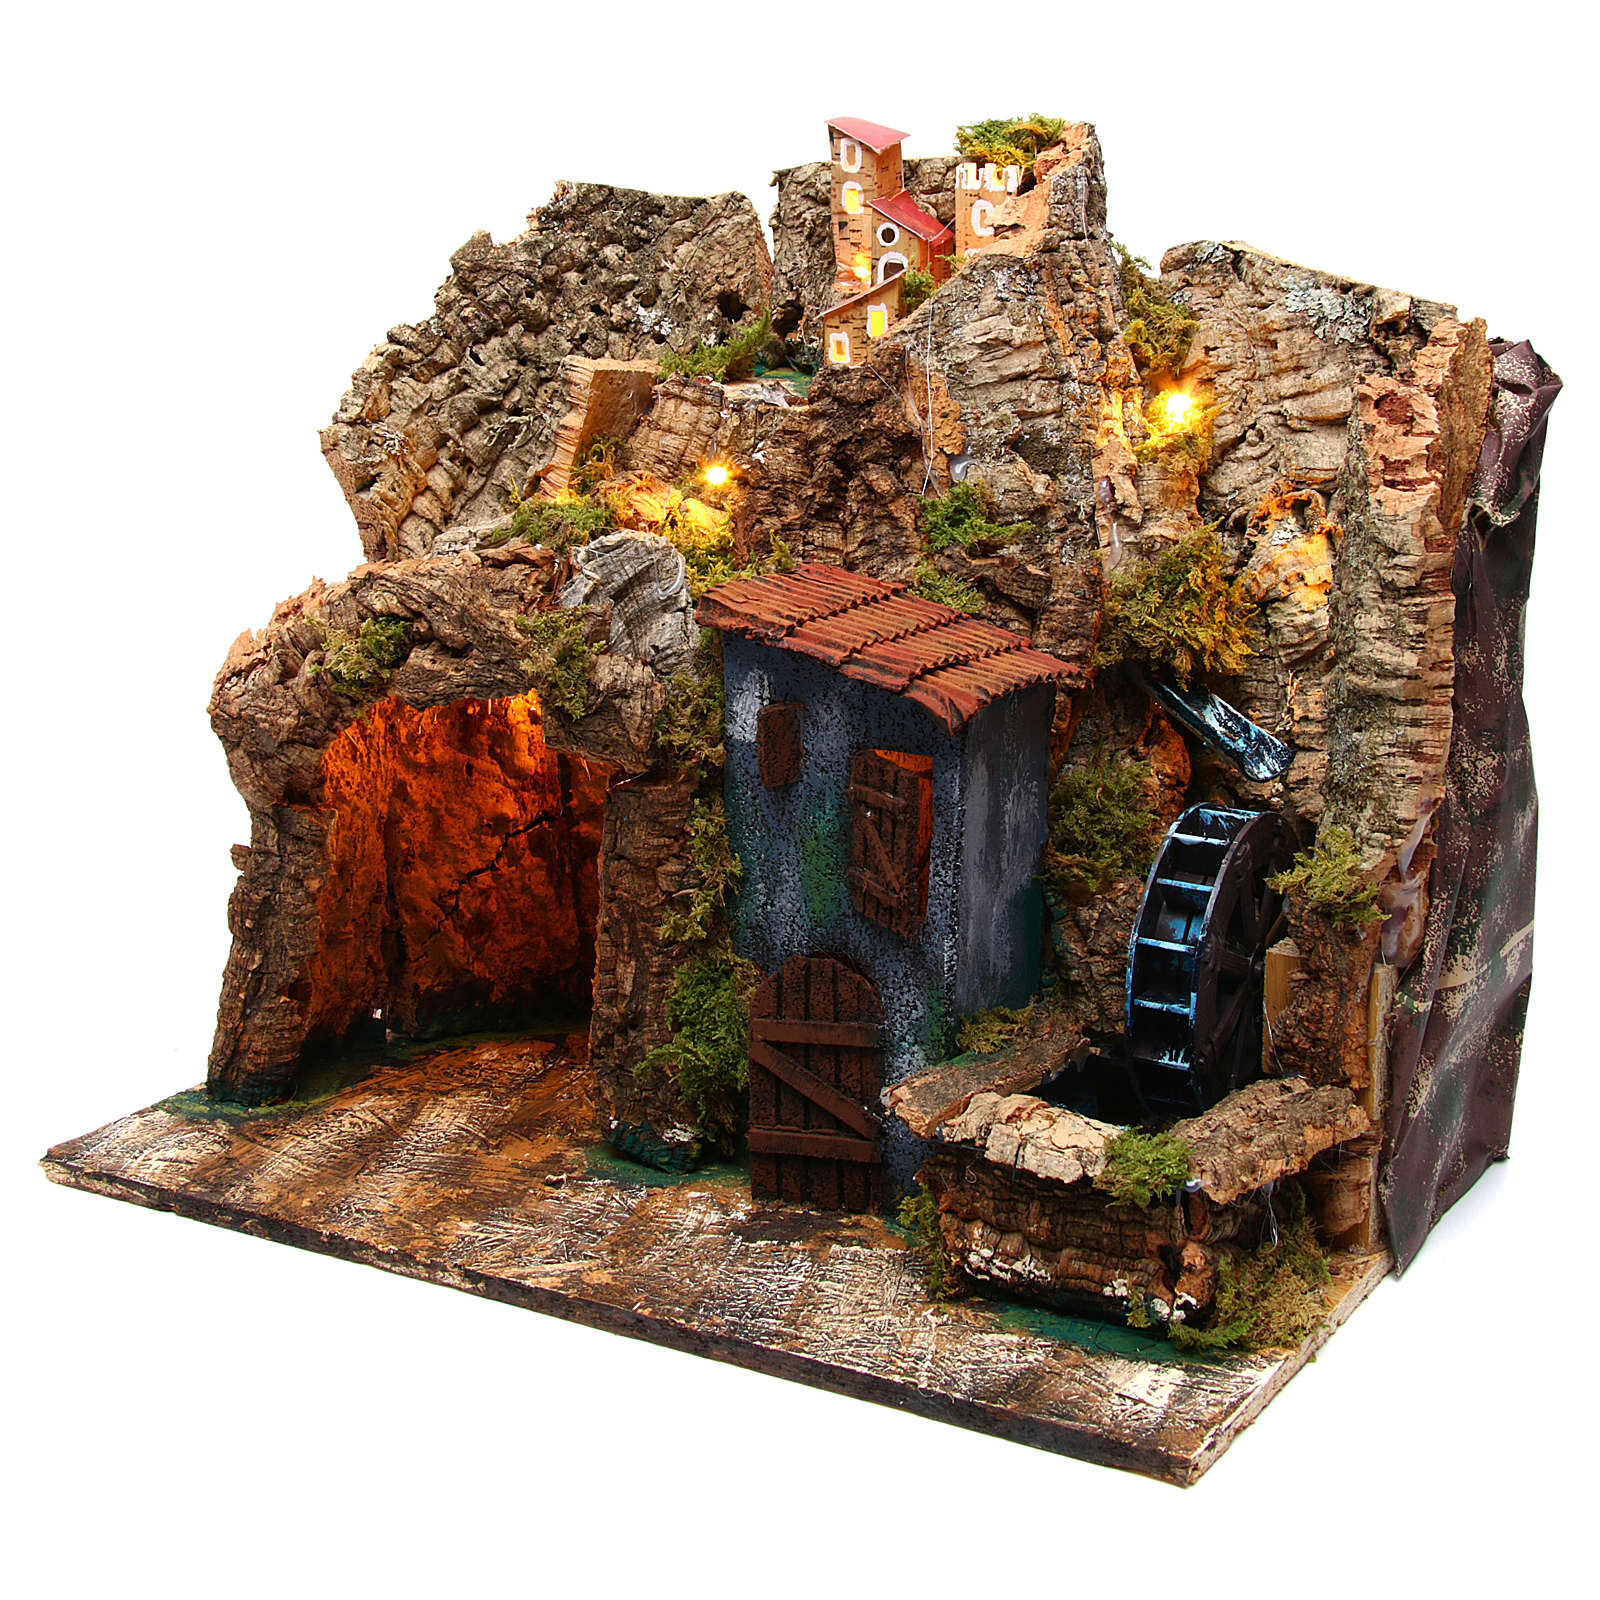 Village with watermill setting for Nativity scene 6-8 cm 45x30x40 cm 4